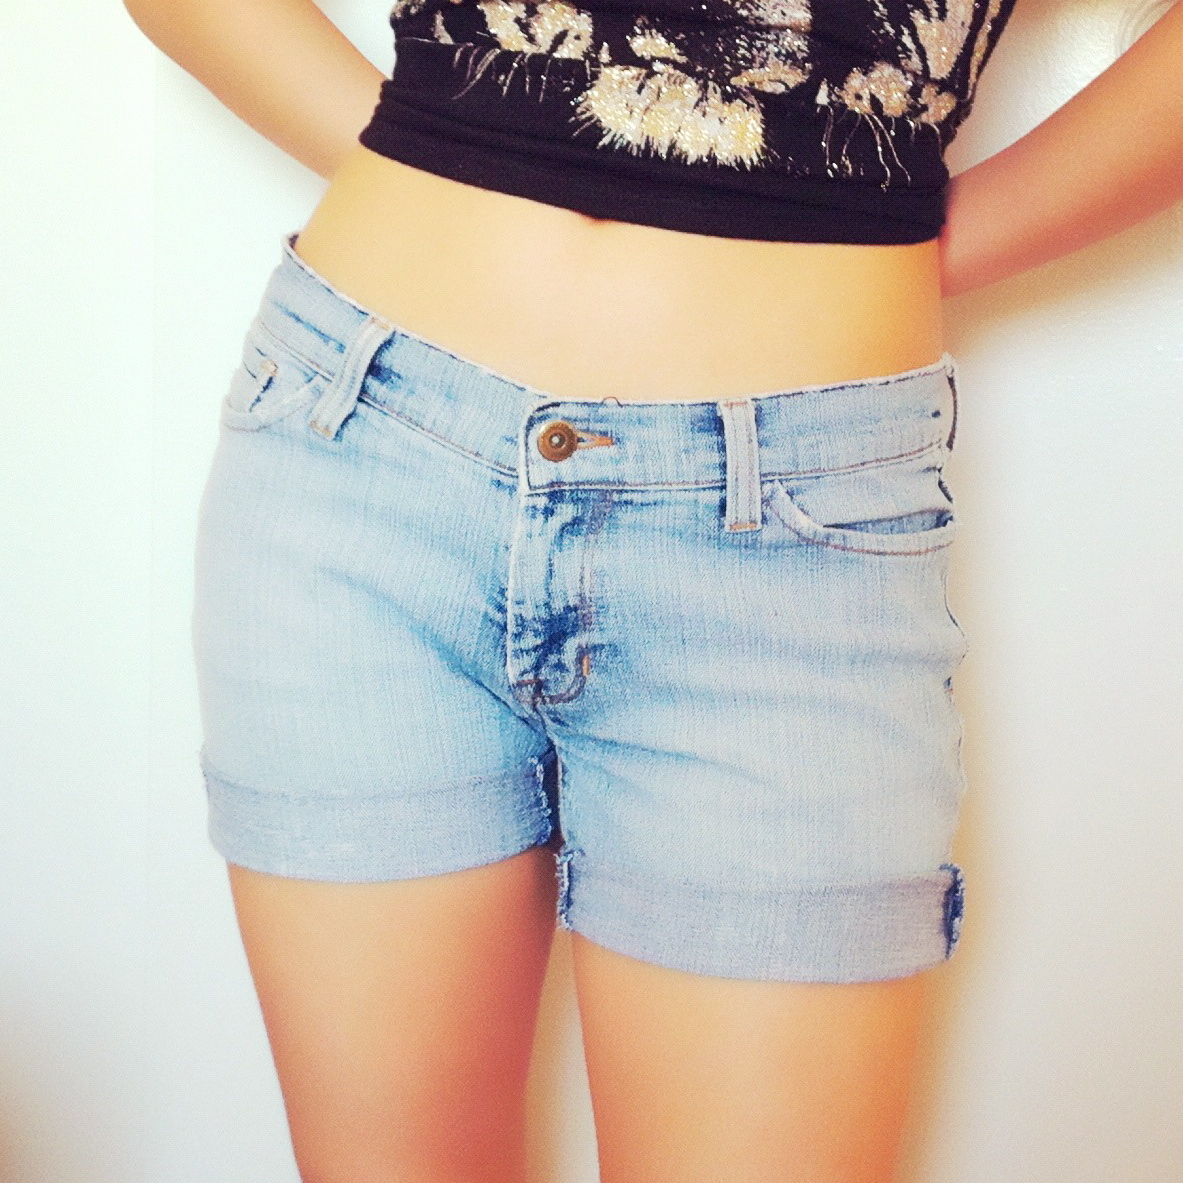 How to turned an old pair of jeans into a pair of cuffed shorts